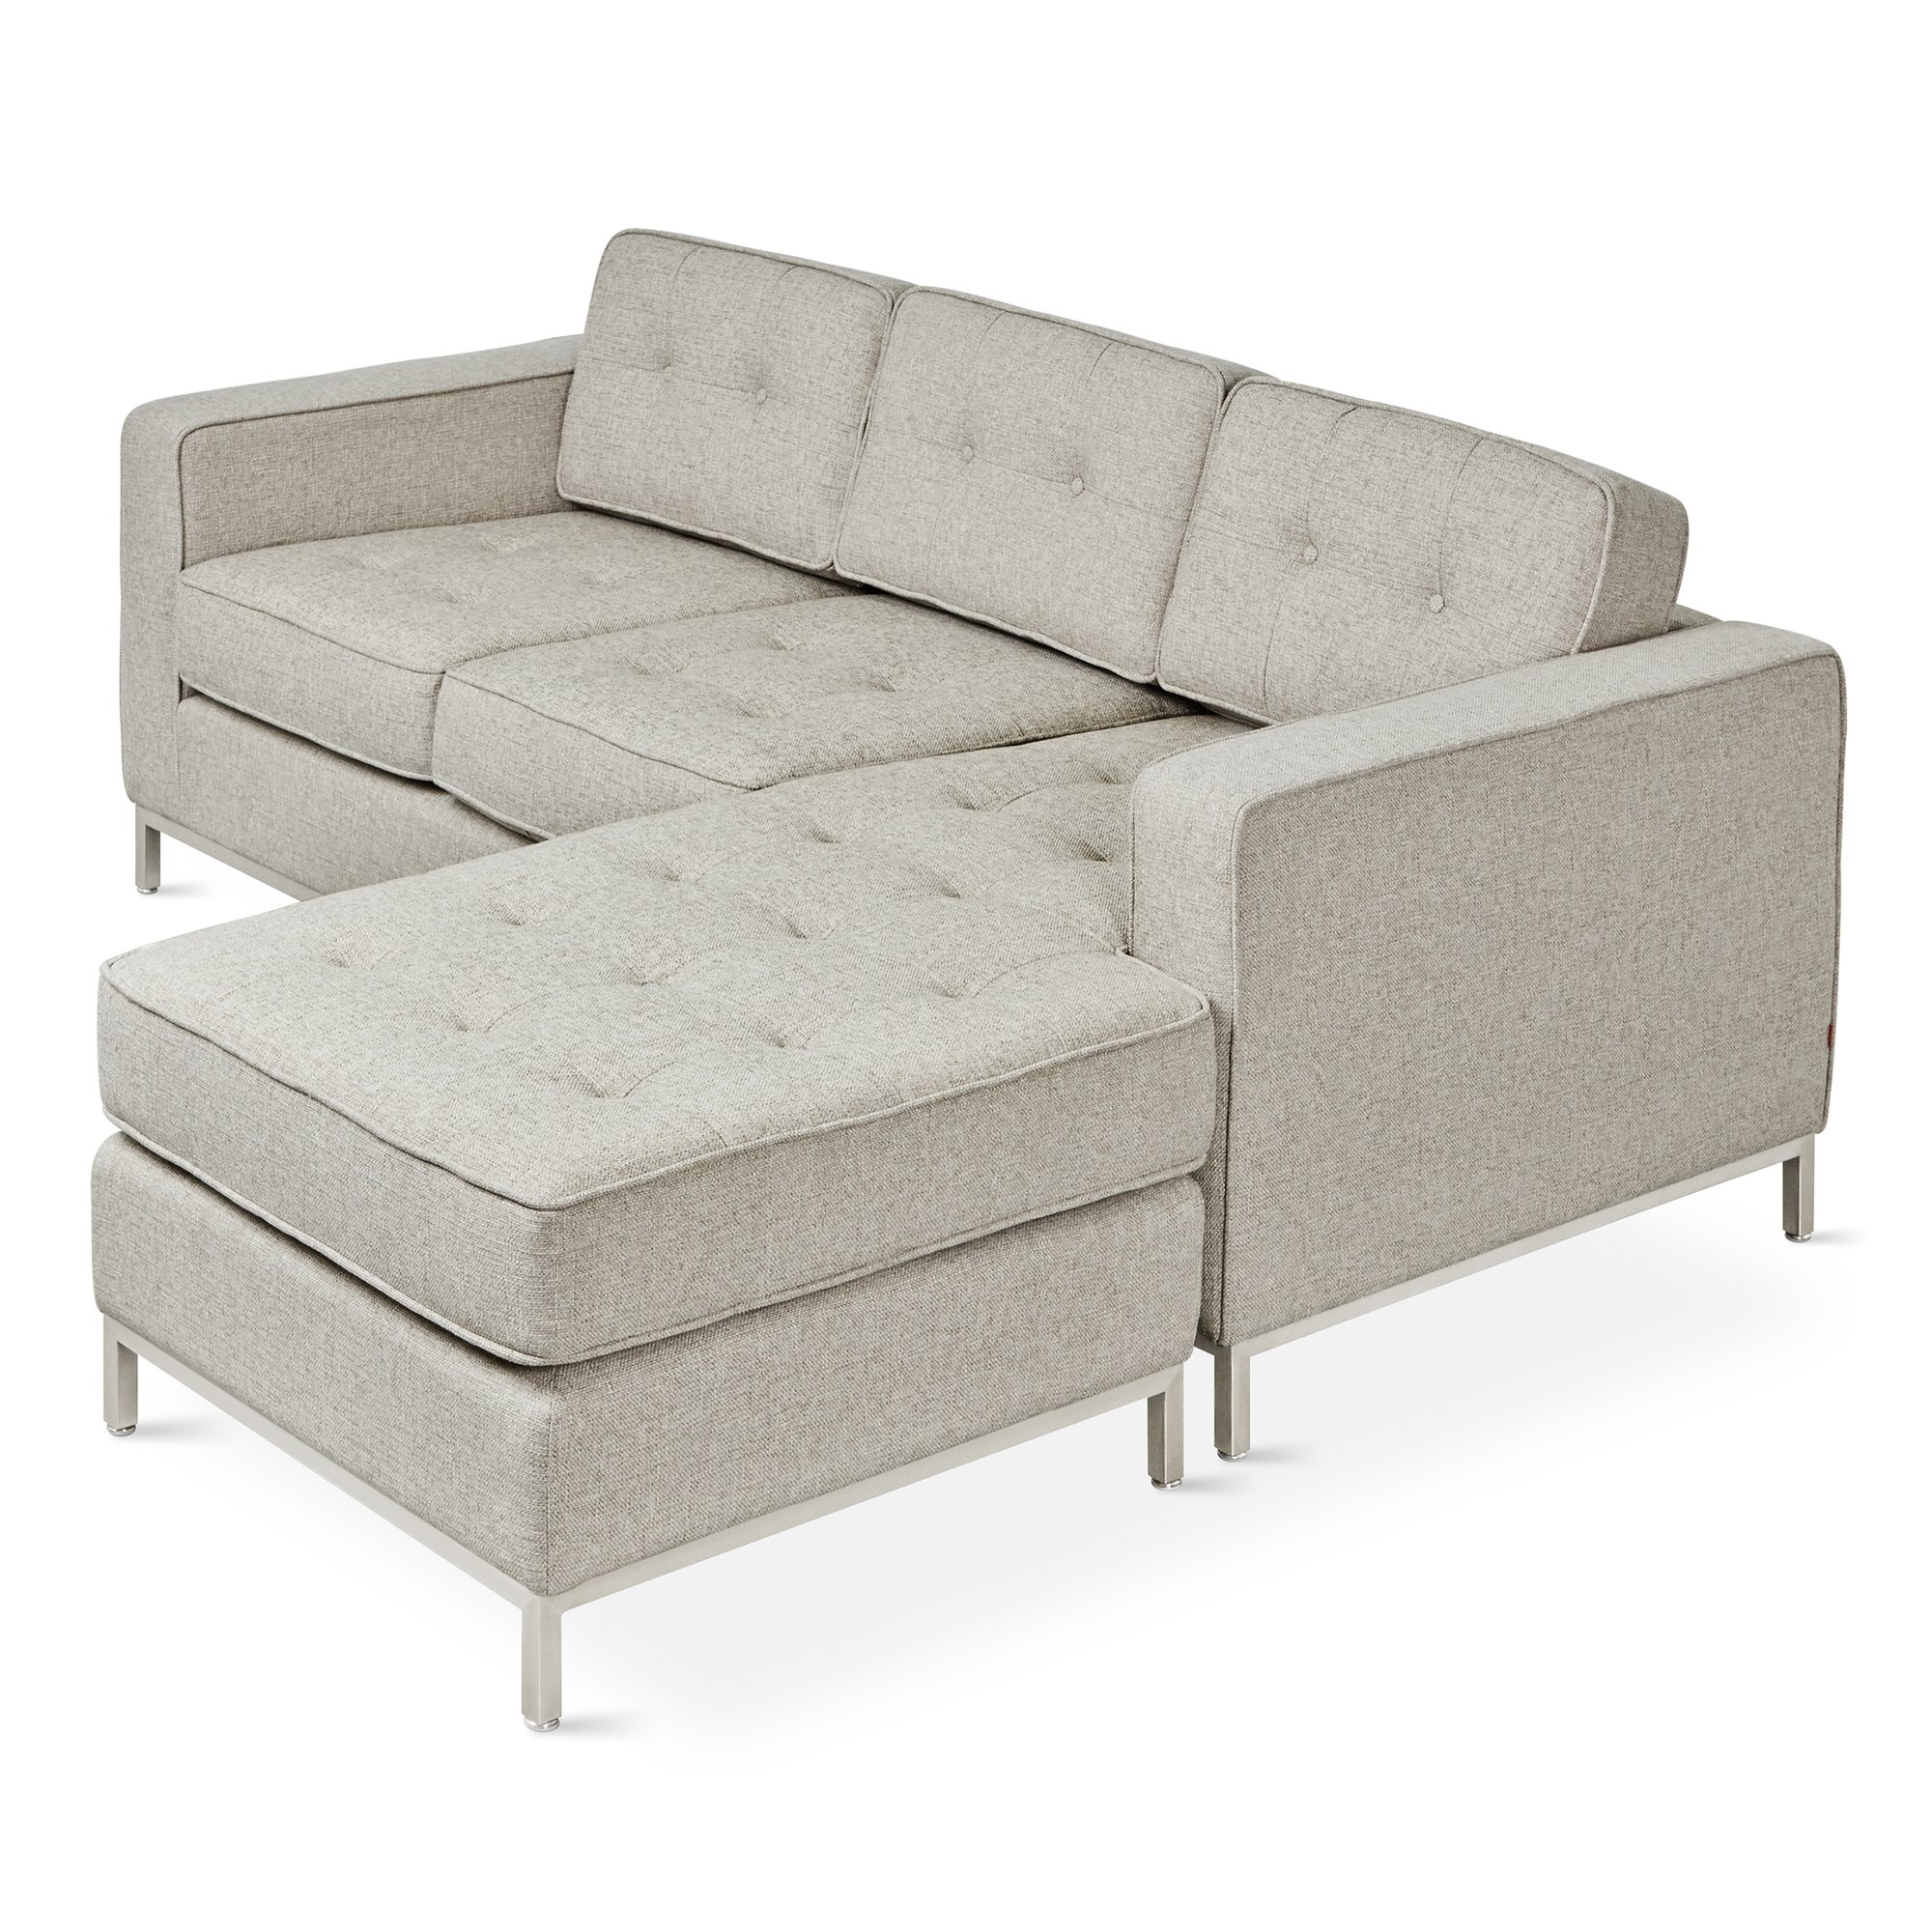 Jane Loft Bi Sectional Reviews Allmodern Throughout Bisectional Sofa (Photo 13 of 15)